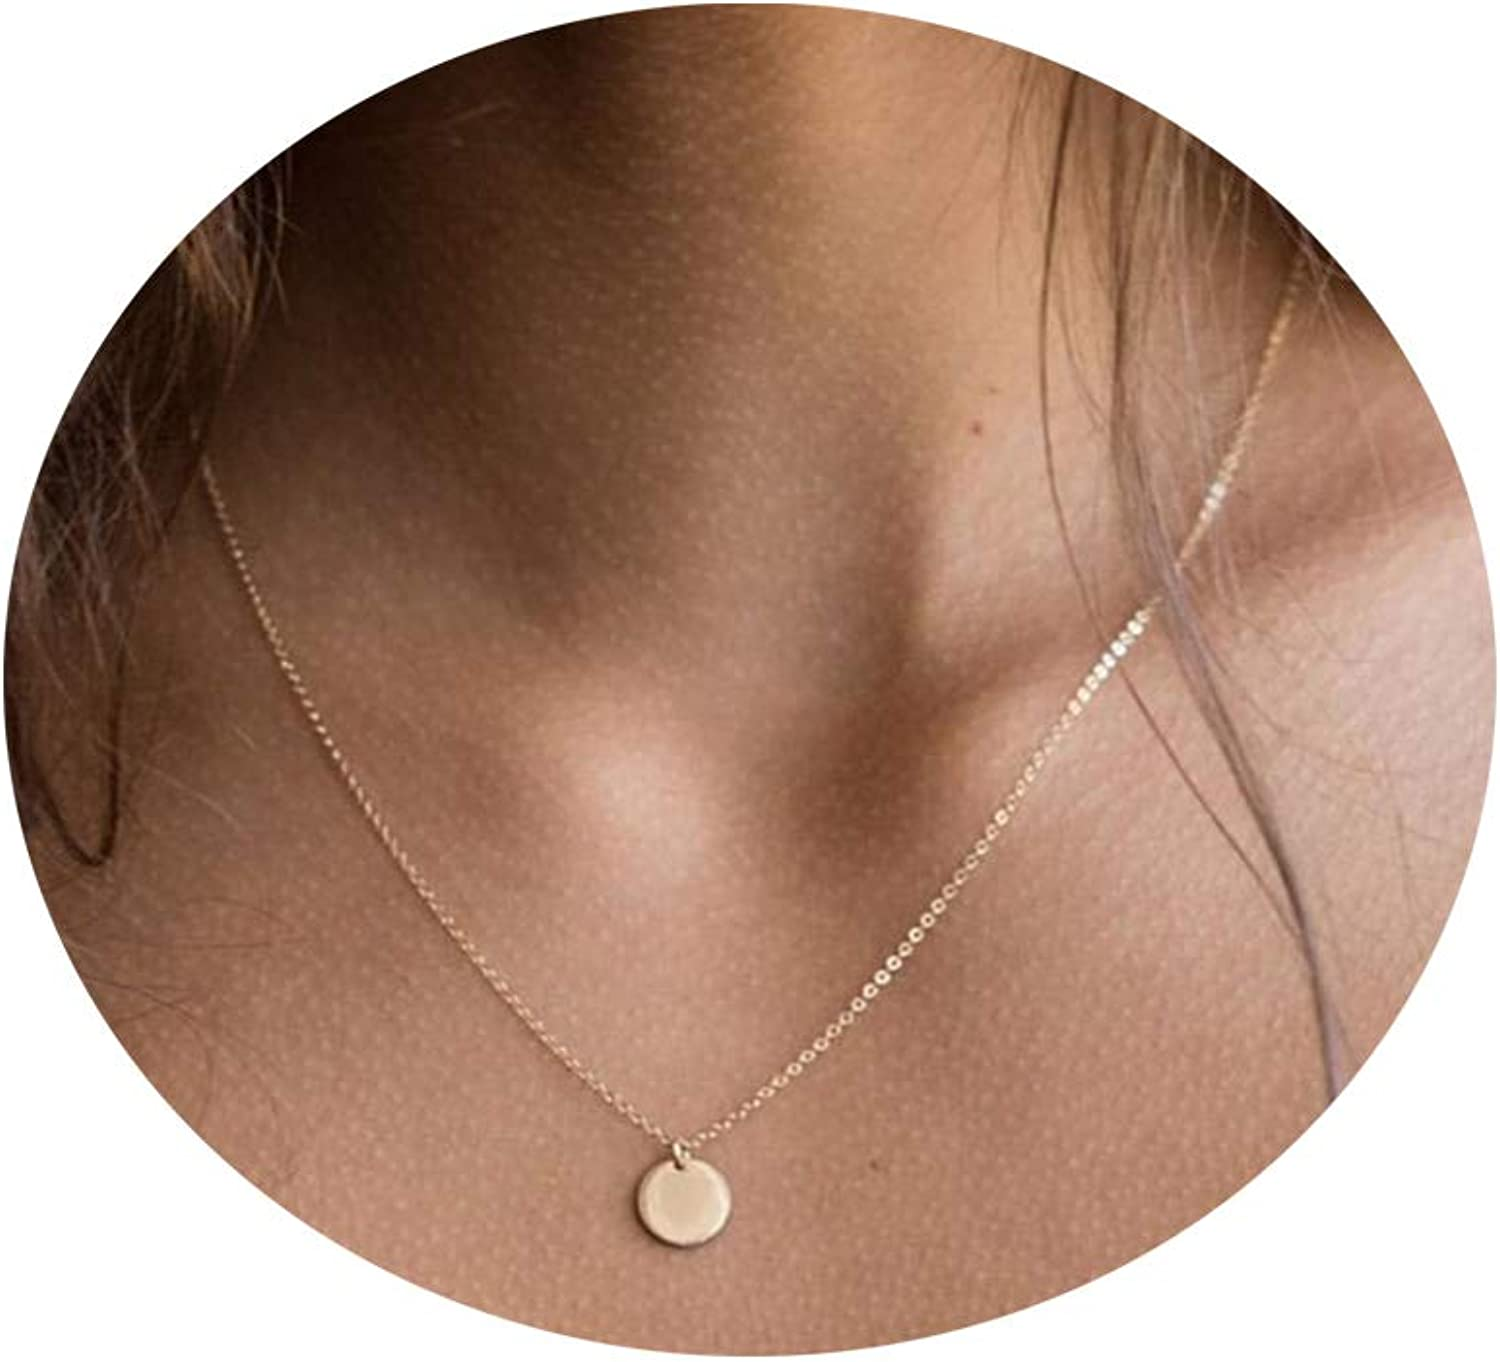 Vavily 14K Gold Dainty Coin Necklace Simple Disc Tiny Bar Pendant Choker Necklace Delicate Tiny Necklace for Women Girls